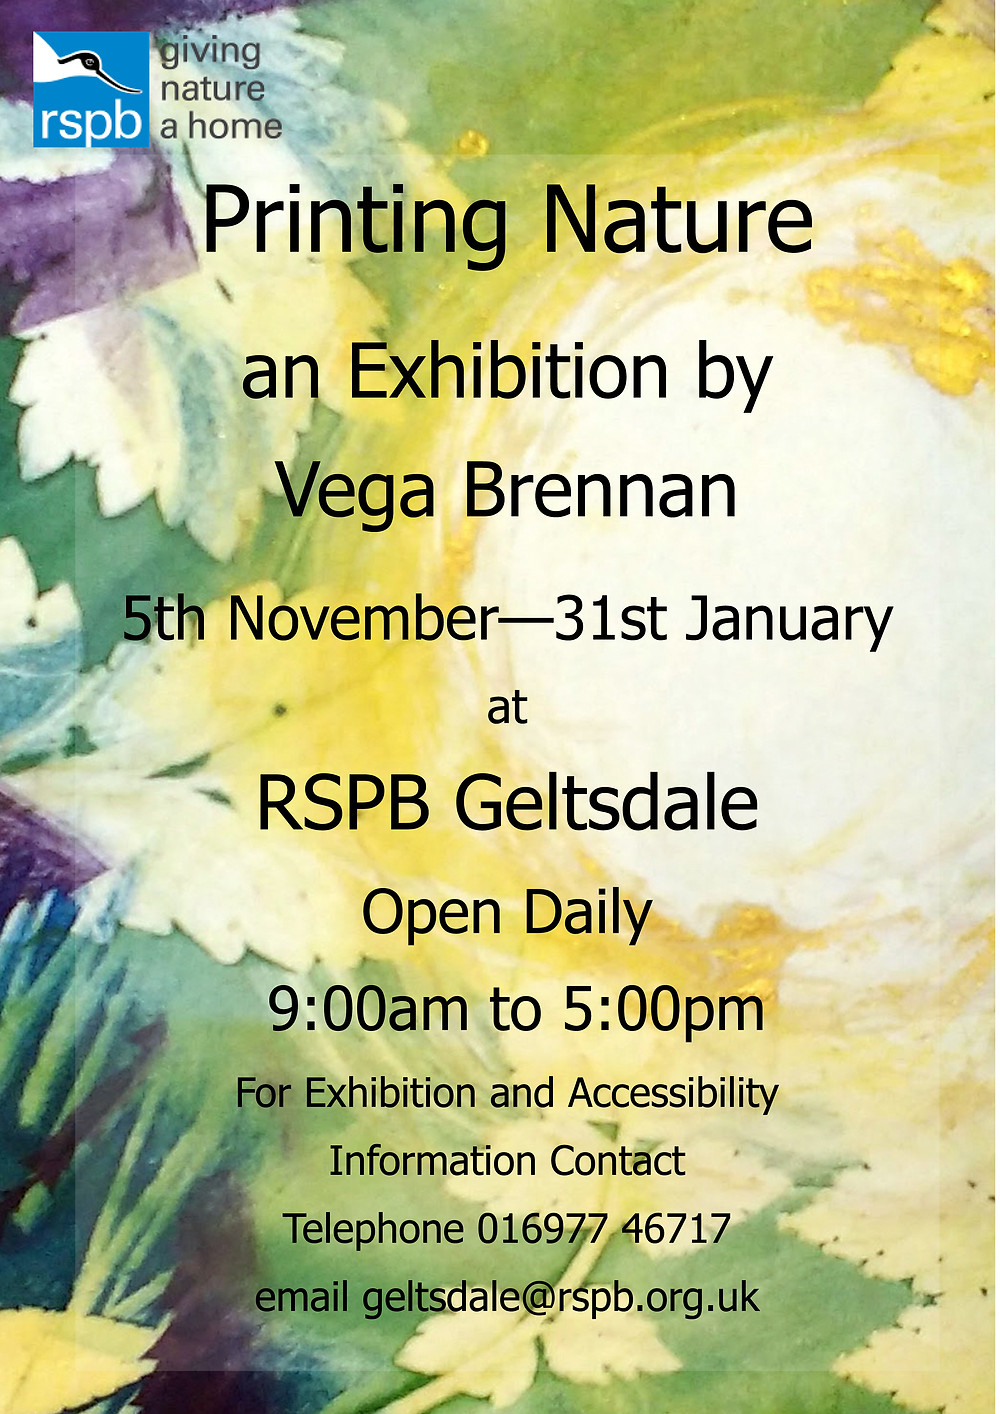 RSPB Geltsdale Printing Nature exhibition poster